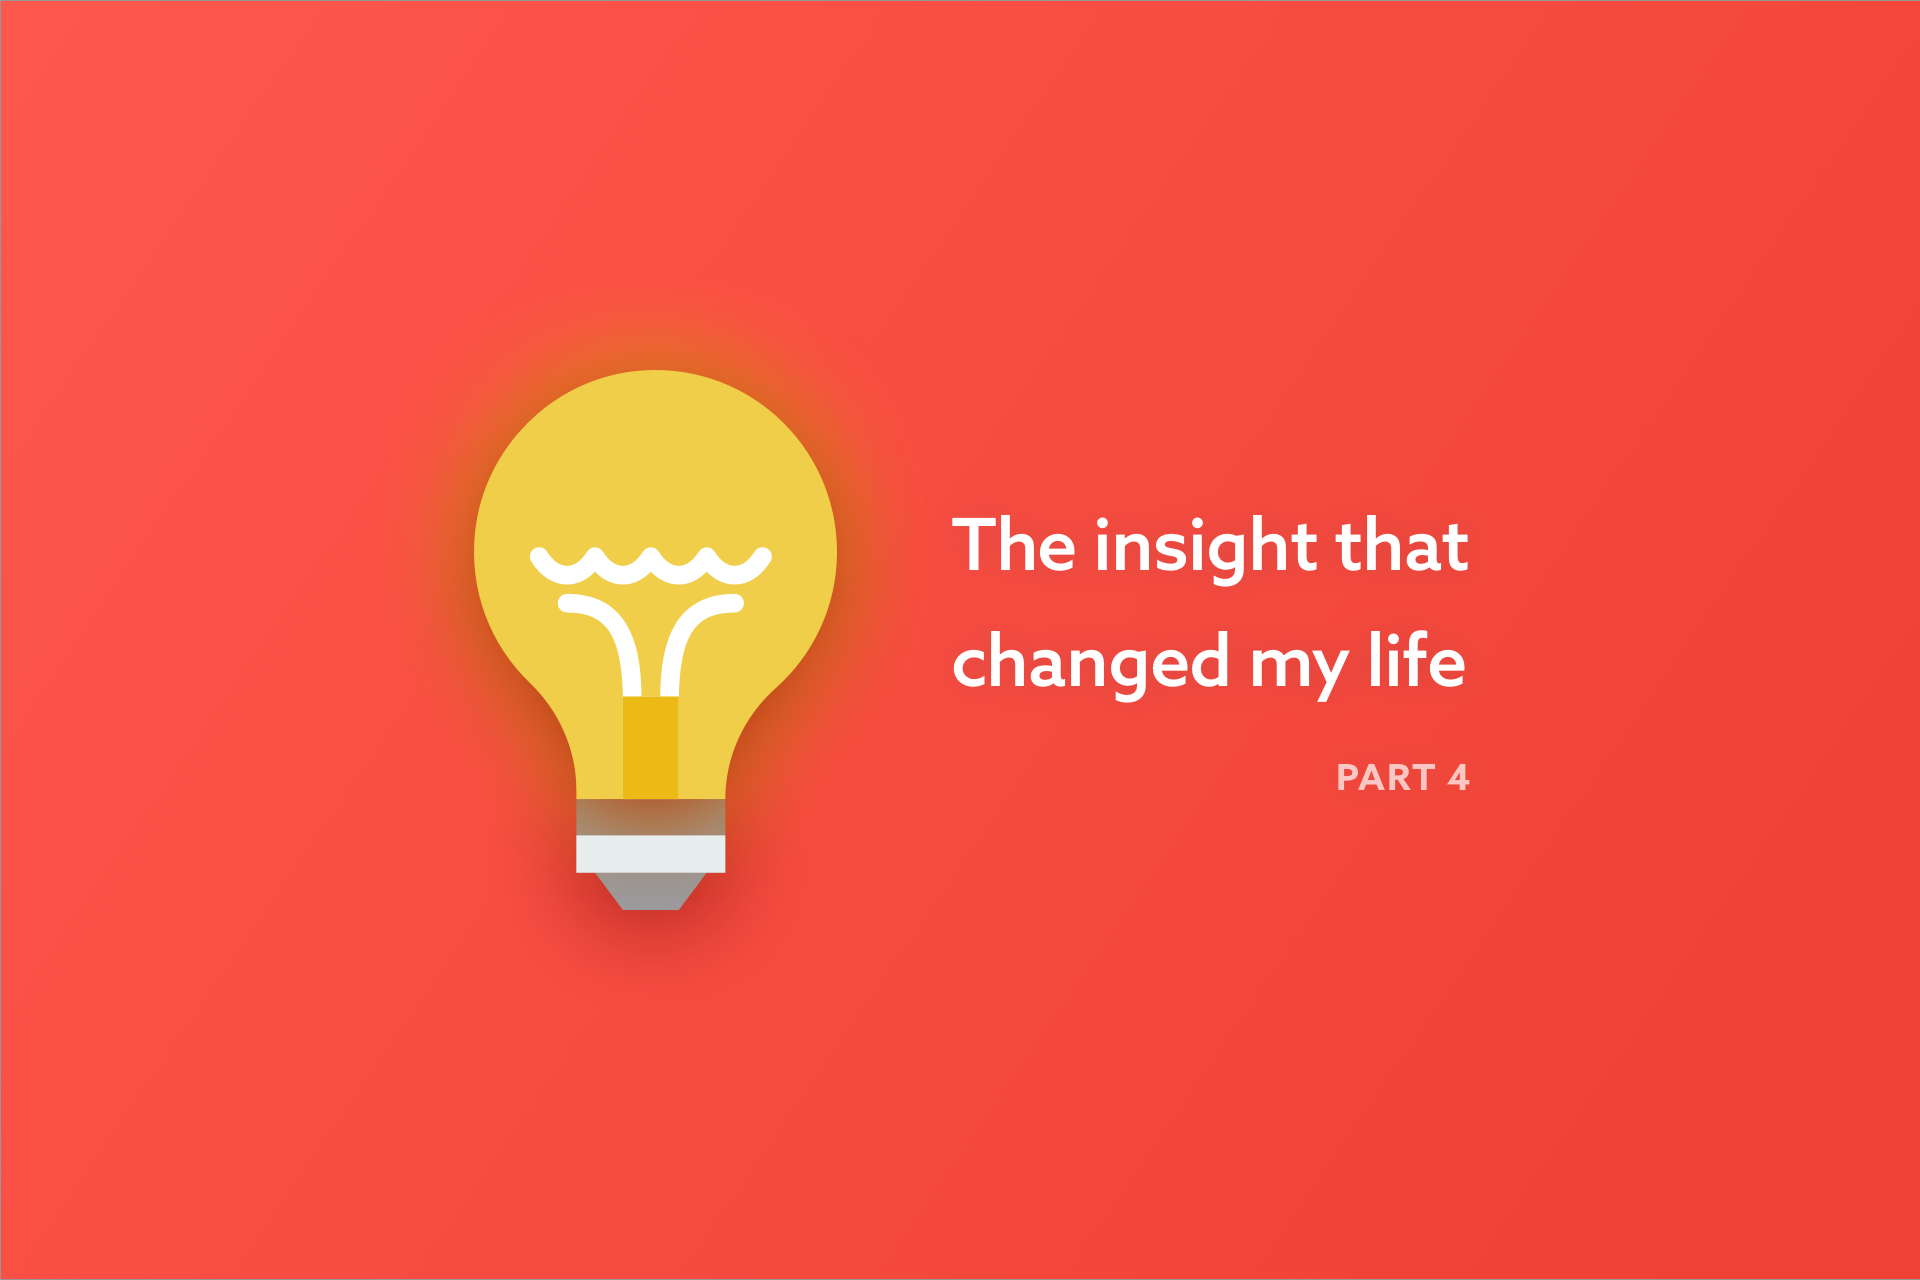 The insight that changed my life (Part Four)